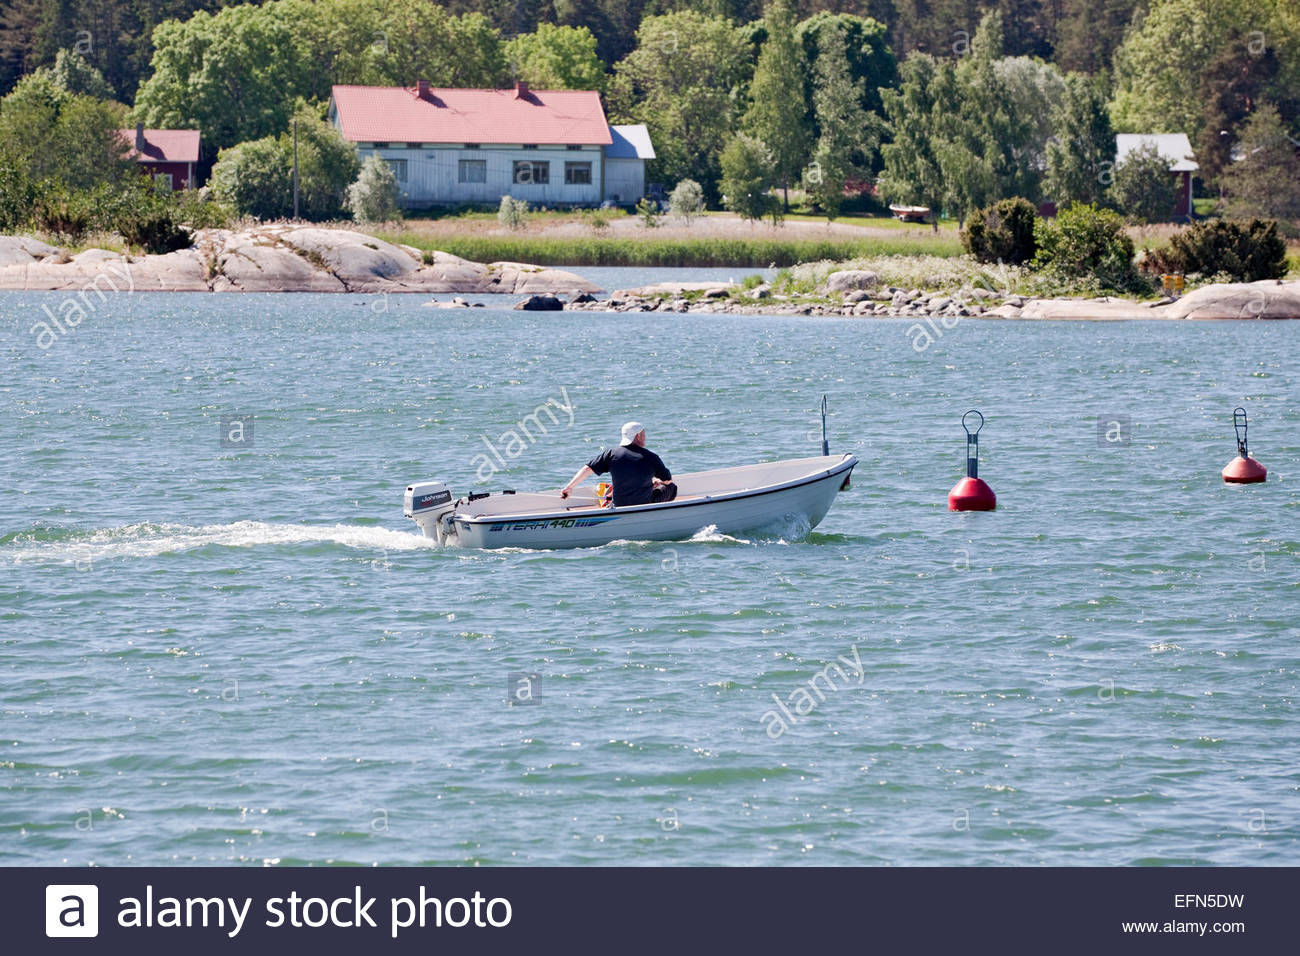 A man in a boat in the archipelago of Turku Finland - Stock Image